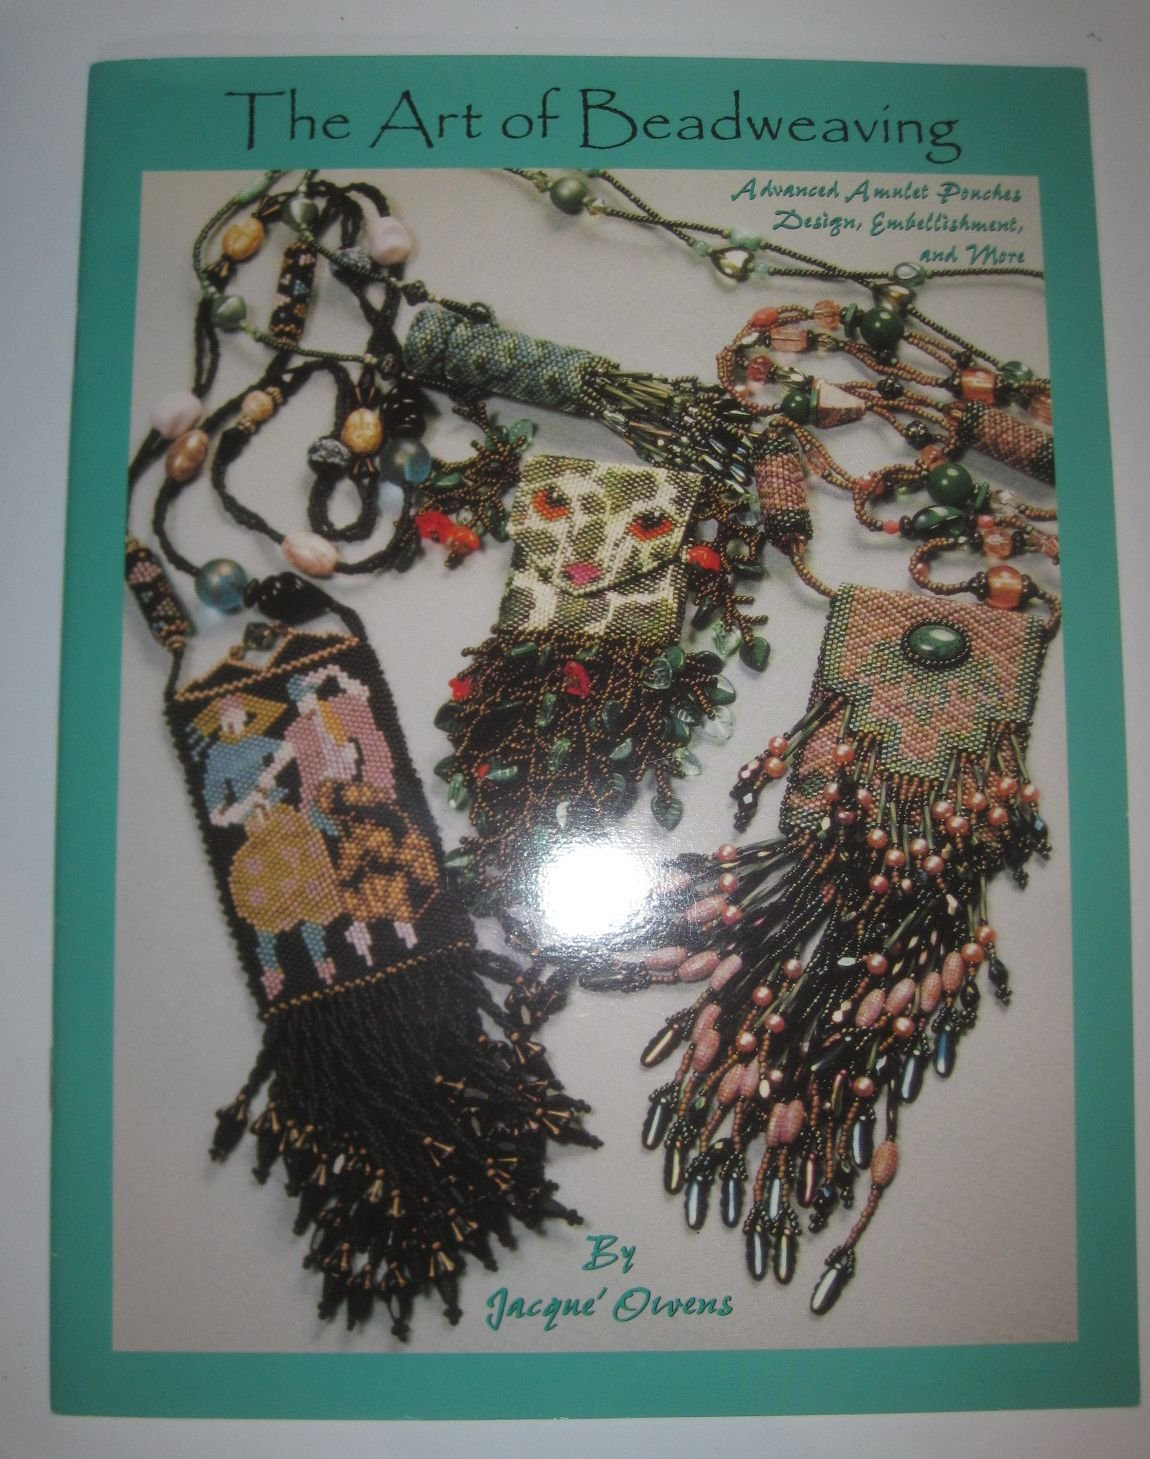 The Art of Beadweaving- Advances Amulet Pouches, Design, Embellishment and More